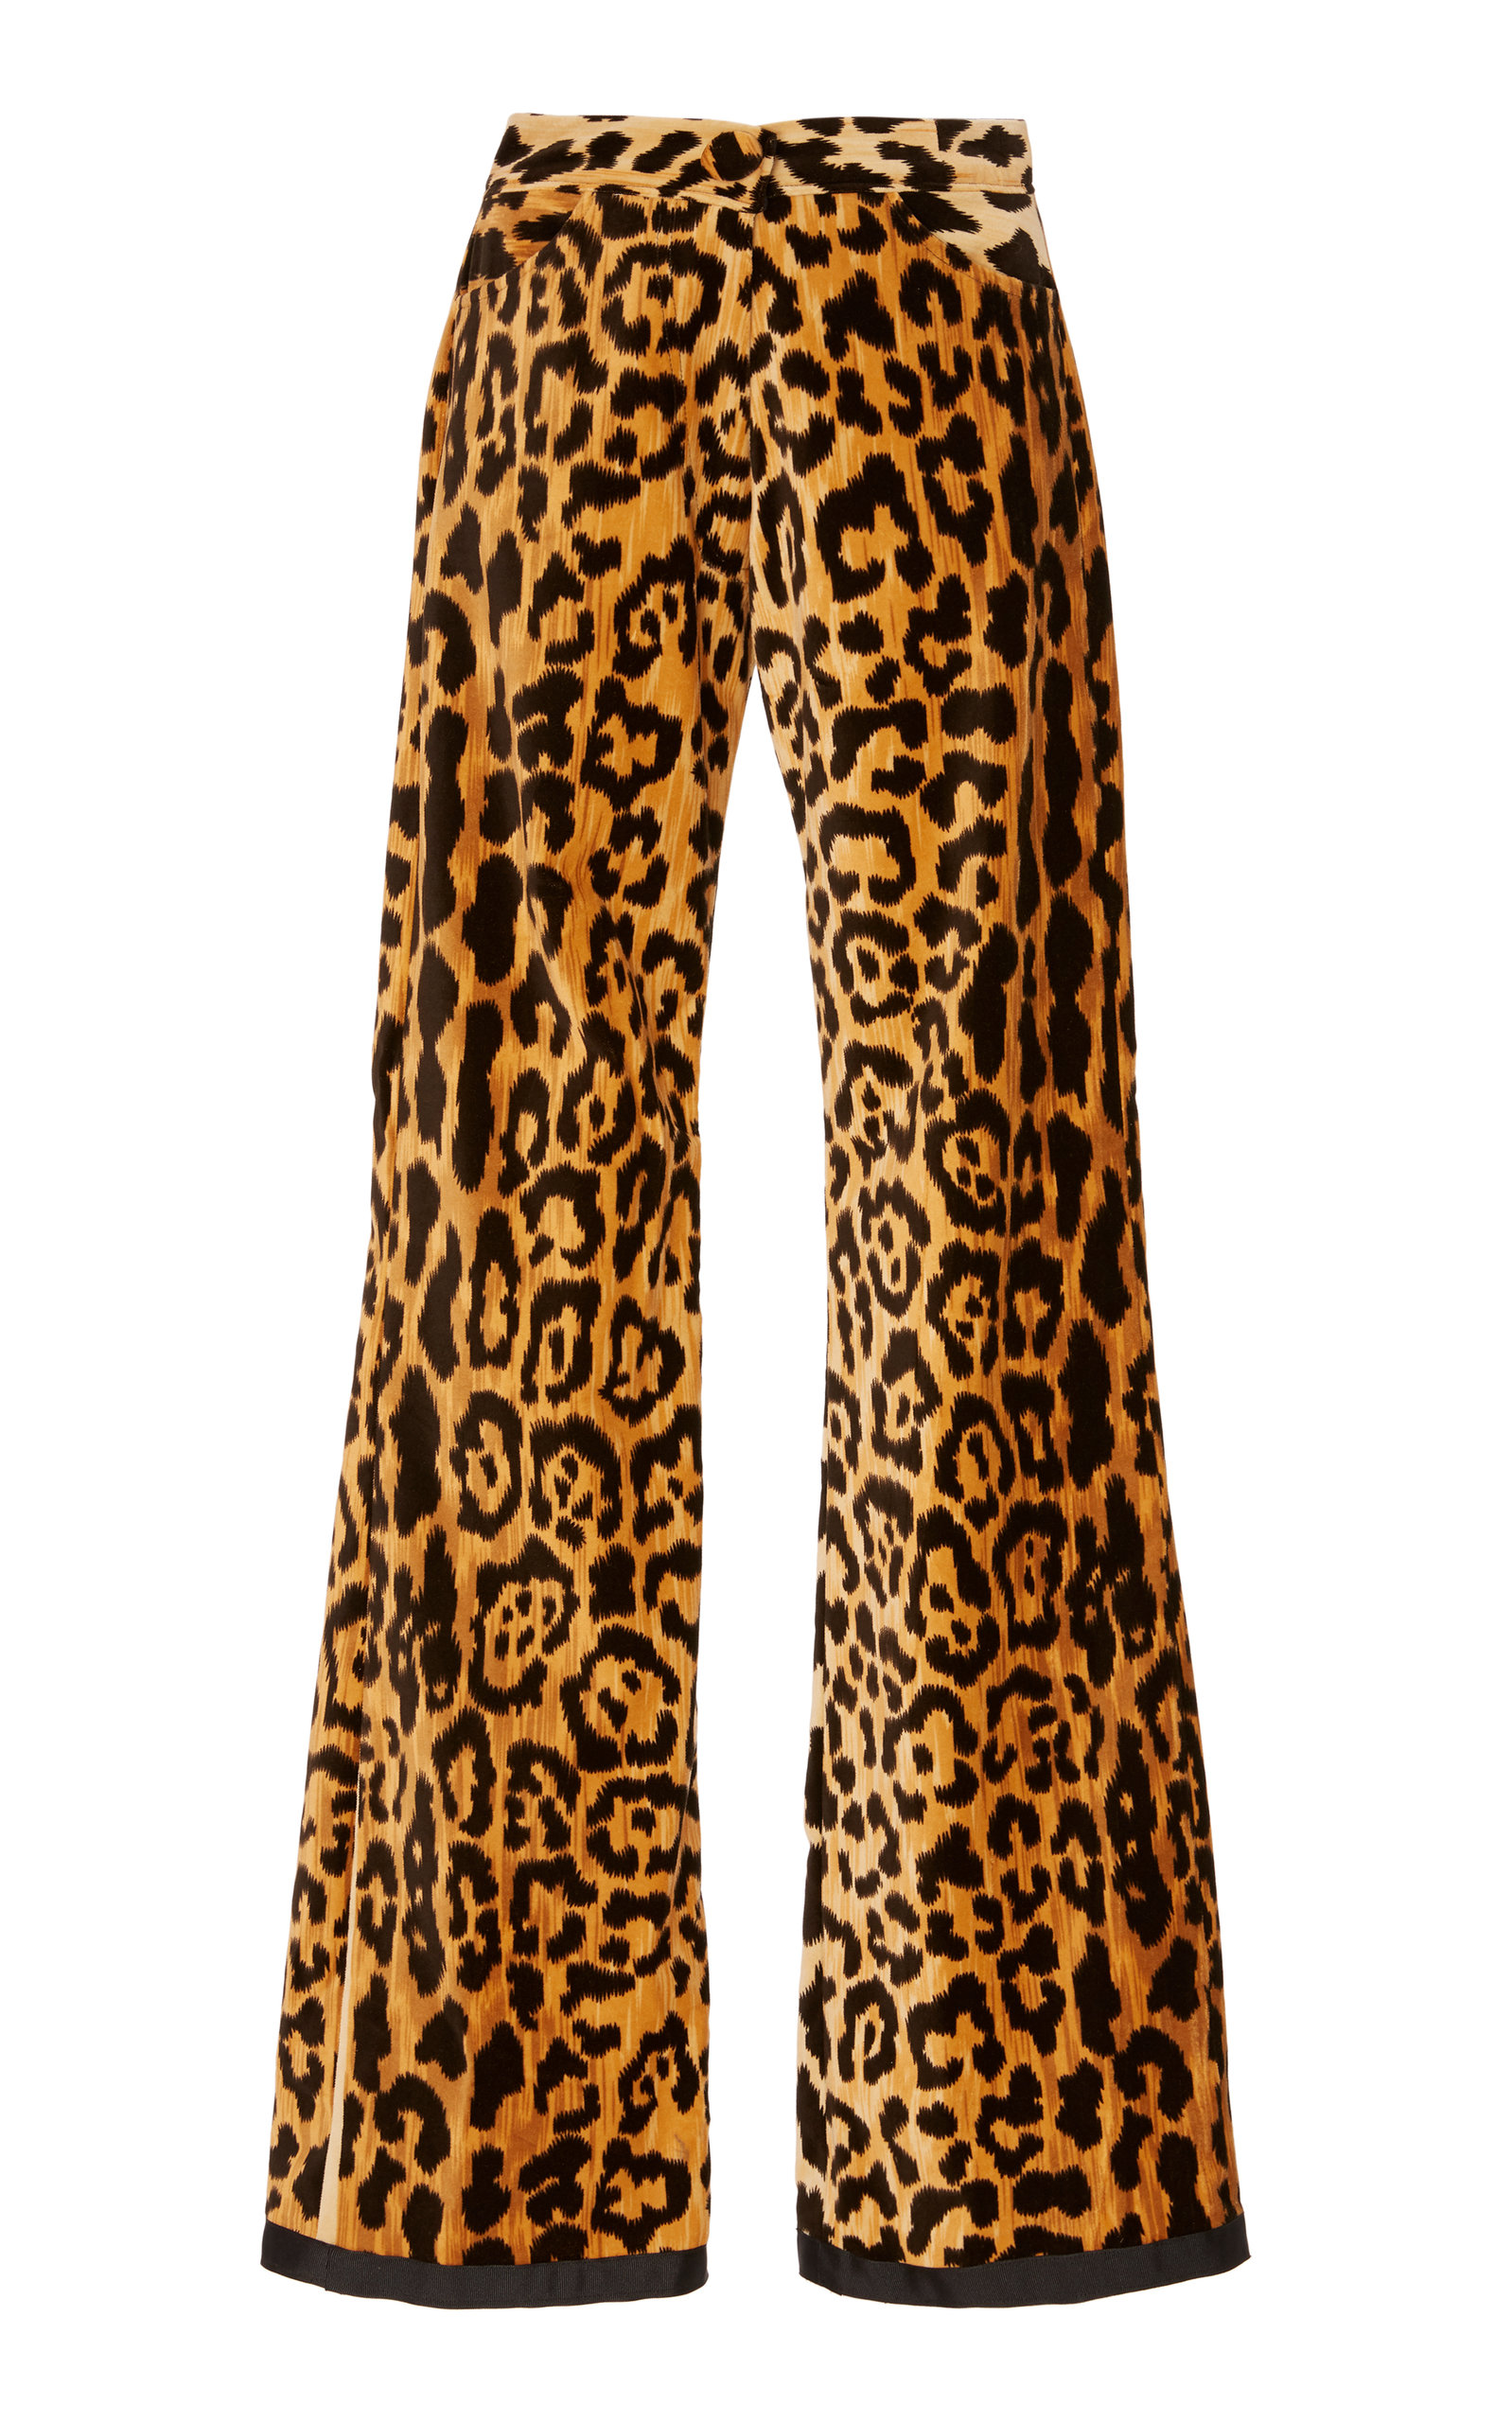 ALIX OF BOHEMIA Limited Edition Jerry Velvet Leopard Jeans in Multi